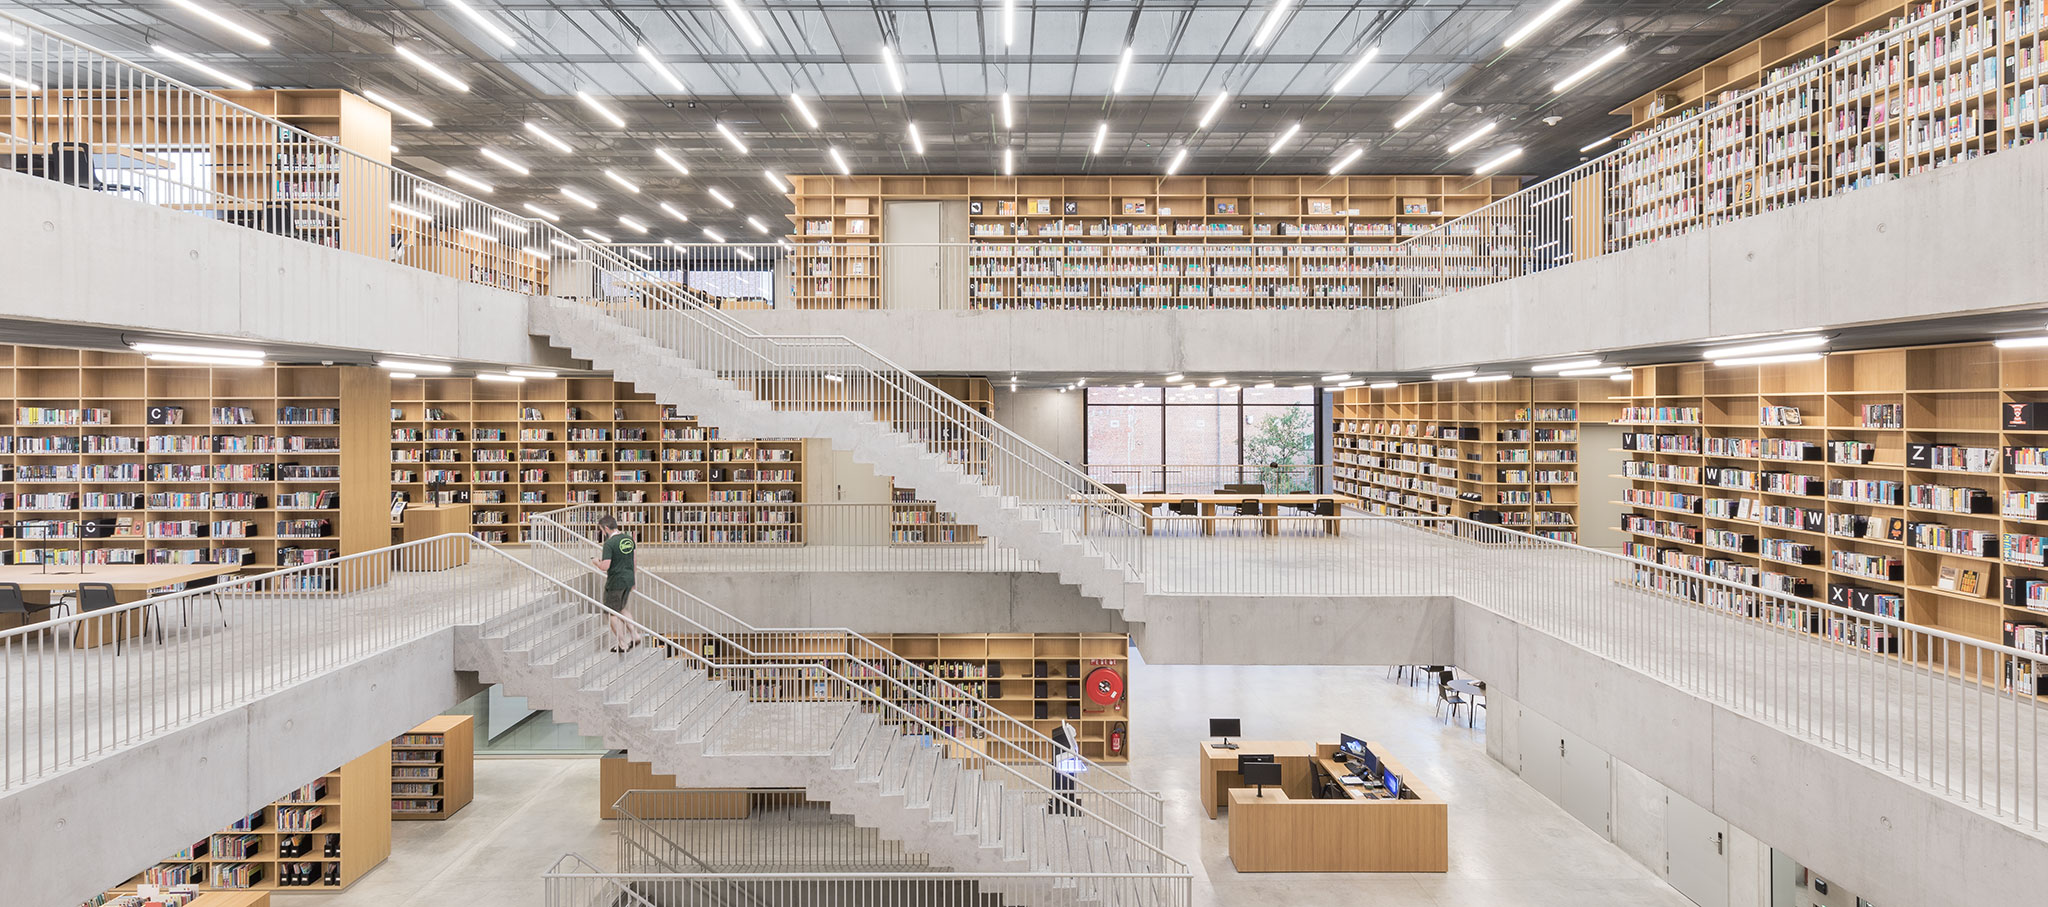 Utopia – Library and Academy for Performing Arts by by KAAN Architecten. Photograph by Delfino Sisto Legnani e Marco Cappelletti